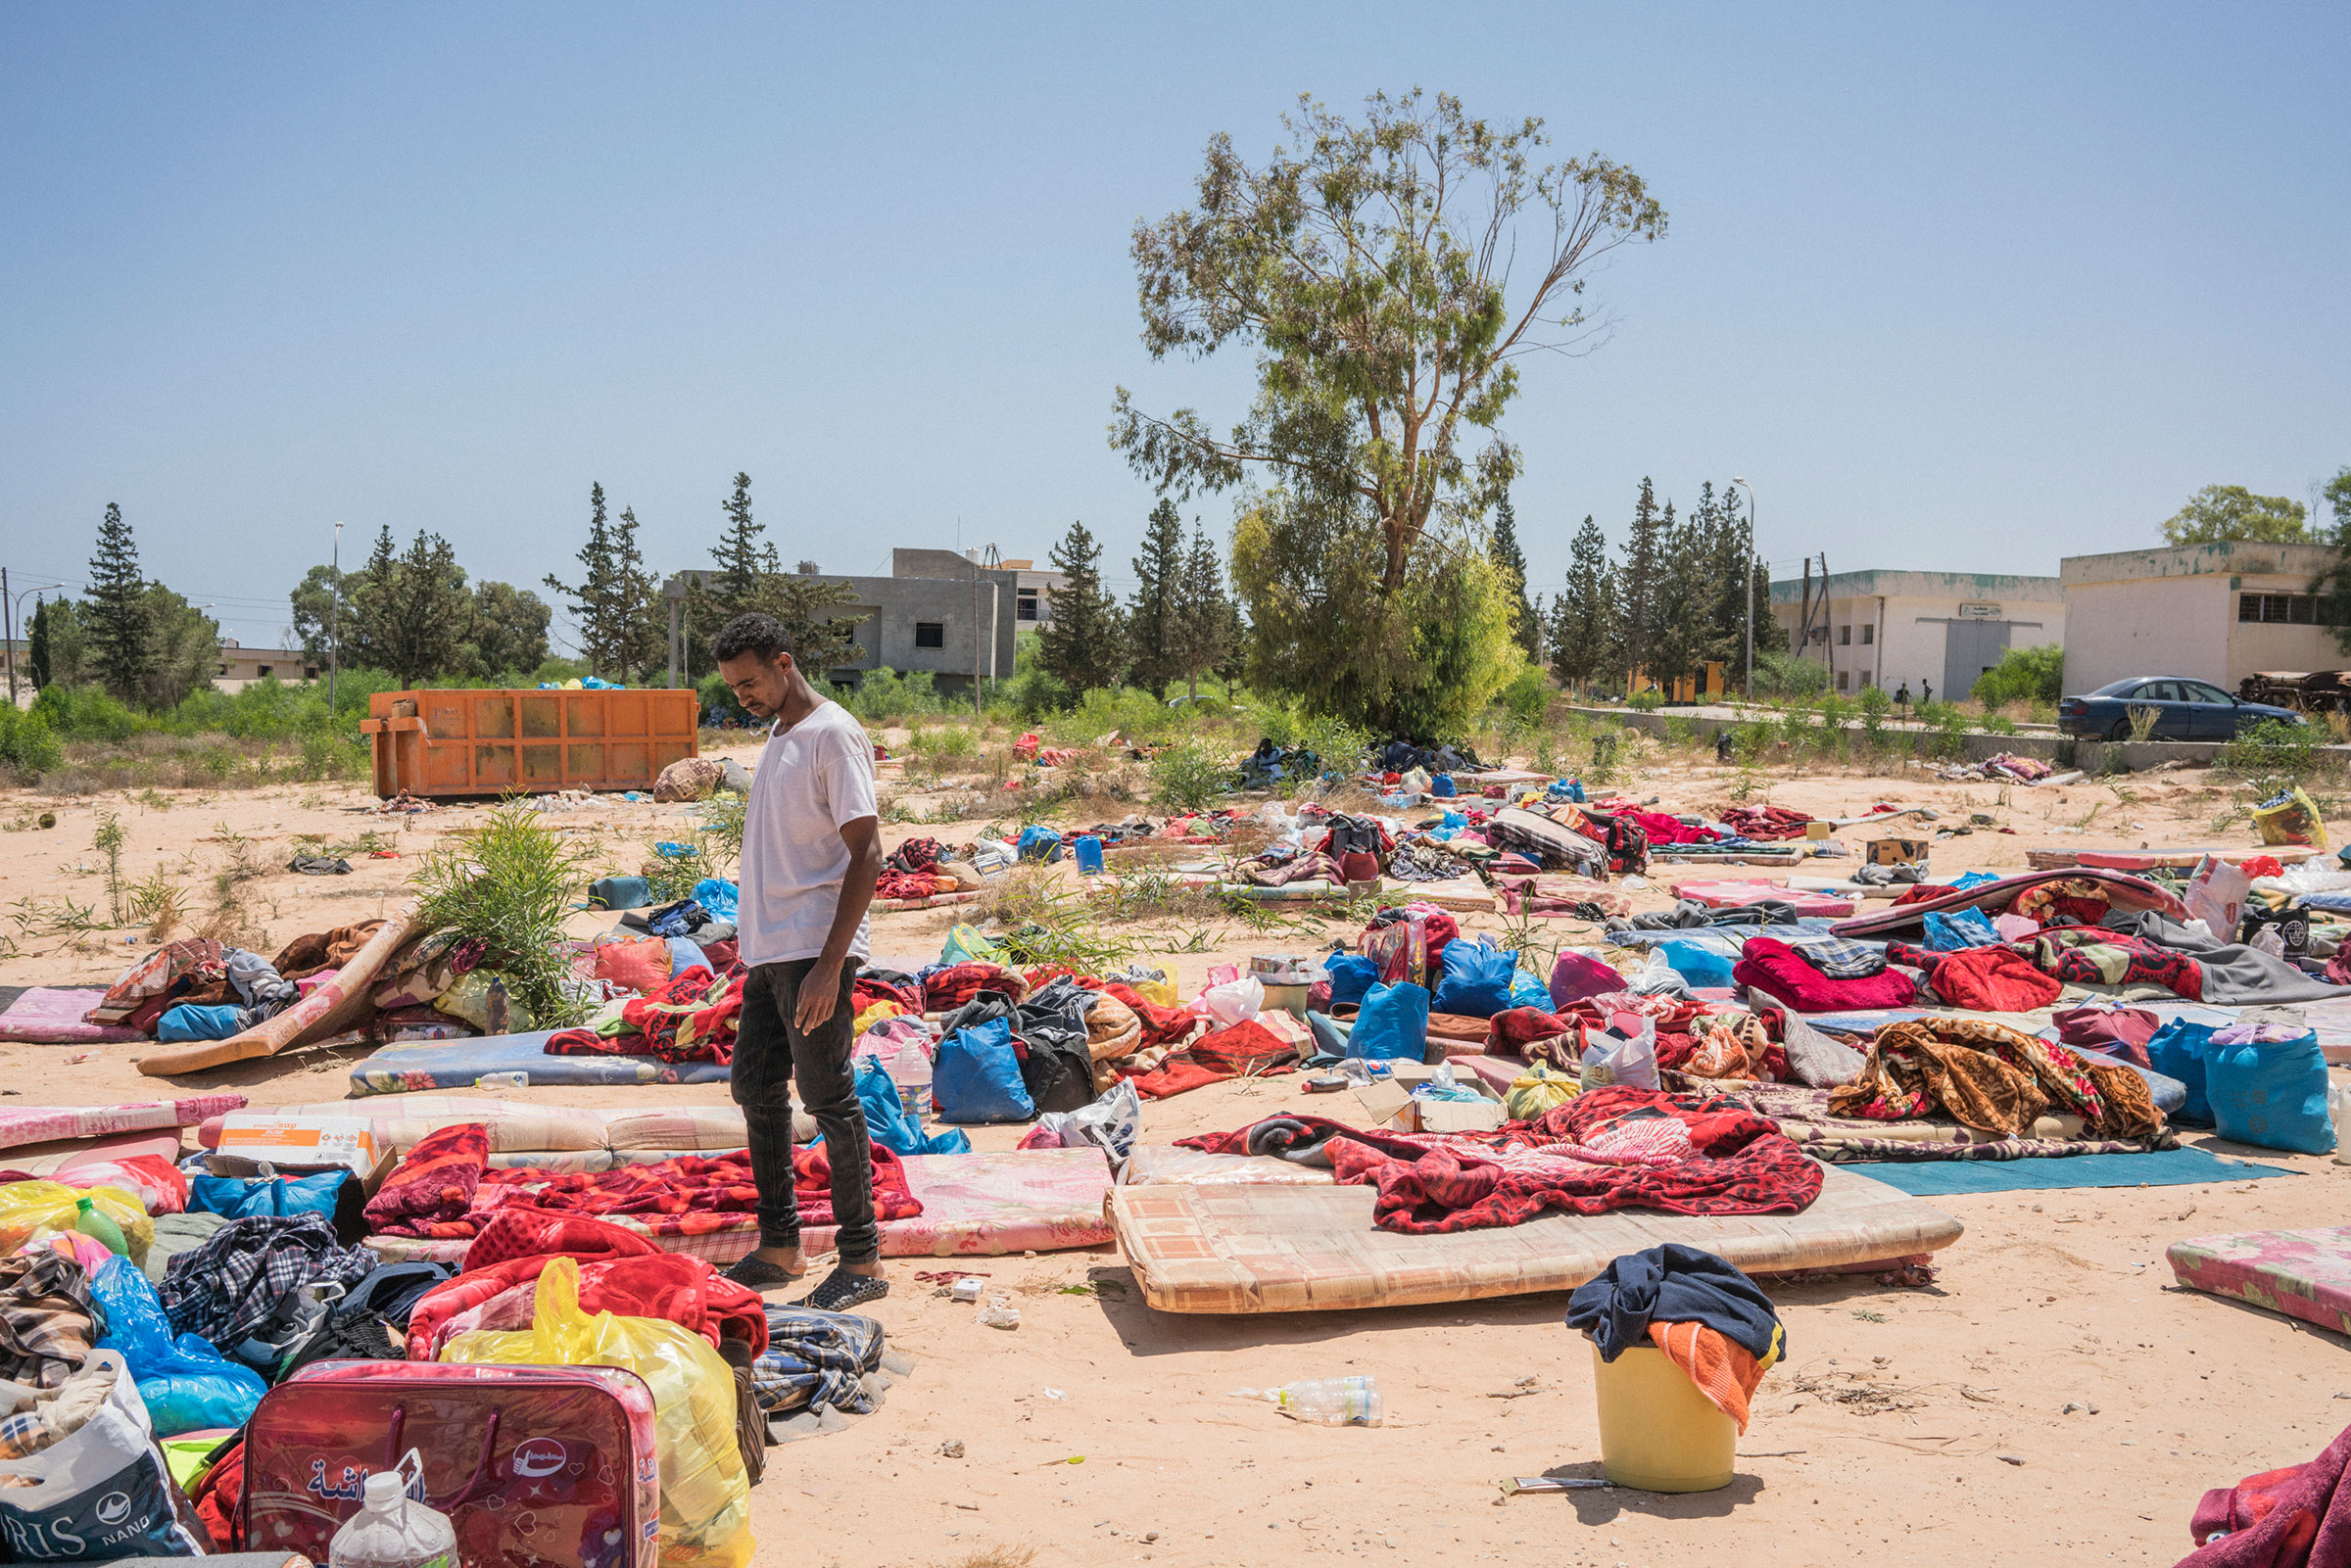 A man stands near damaged belongings after an airstrike hit a detention center, killing 53 people and injuring about 130 people, near Tripoli on July 3, 2019.